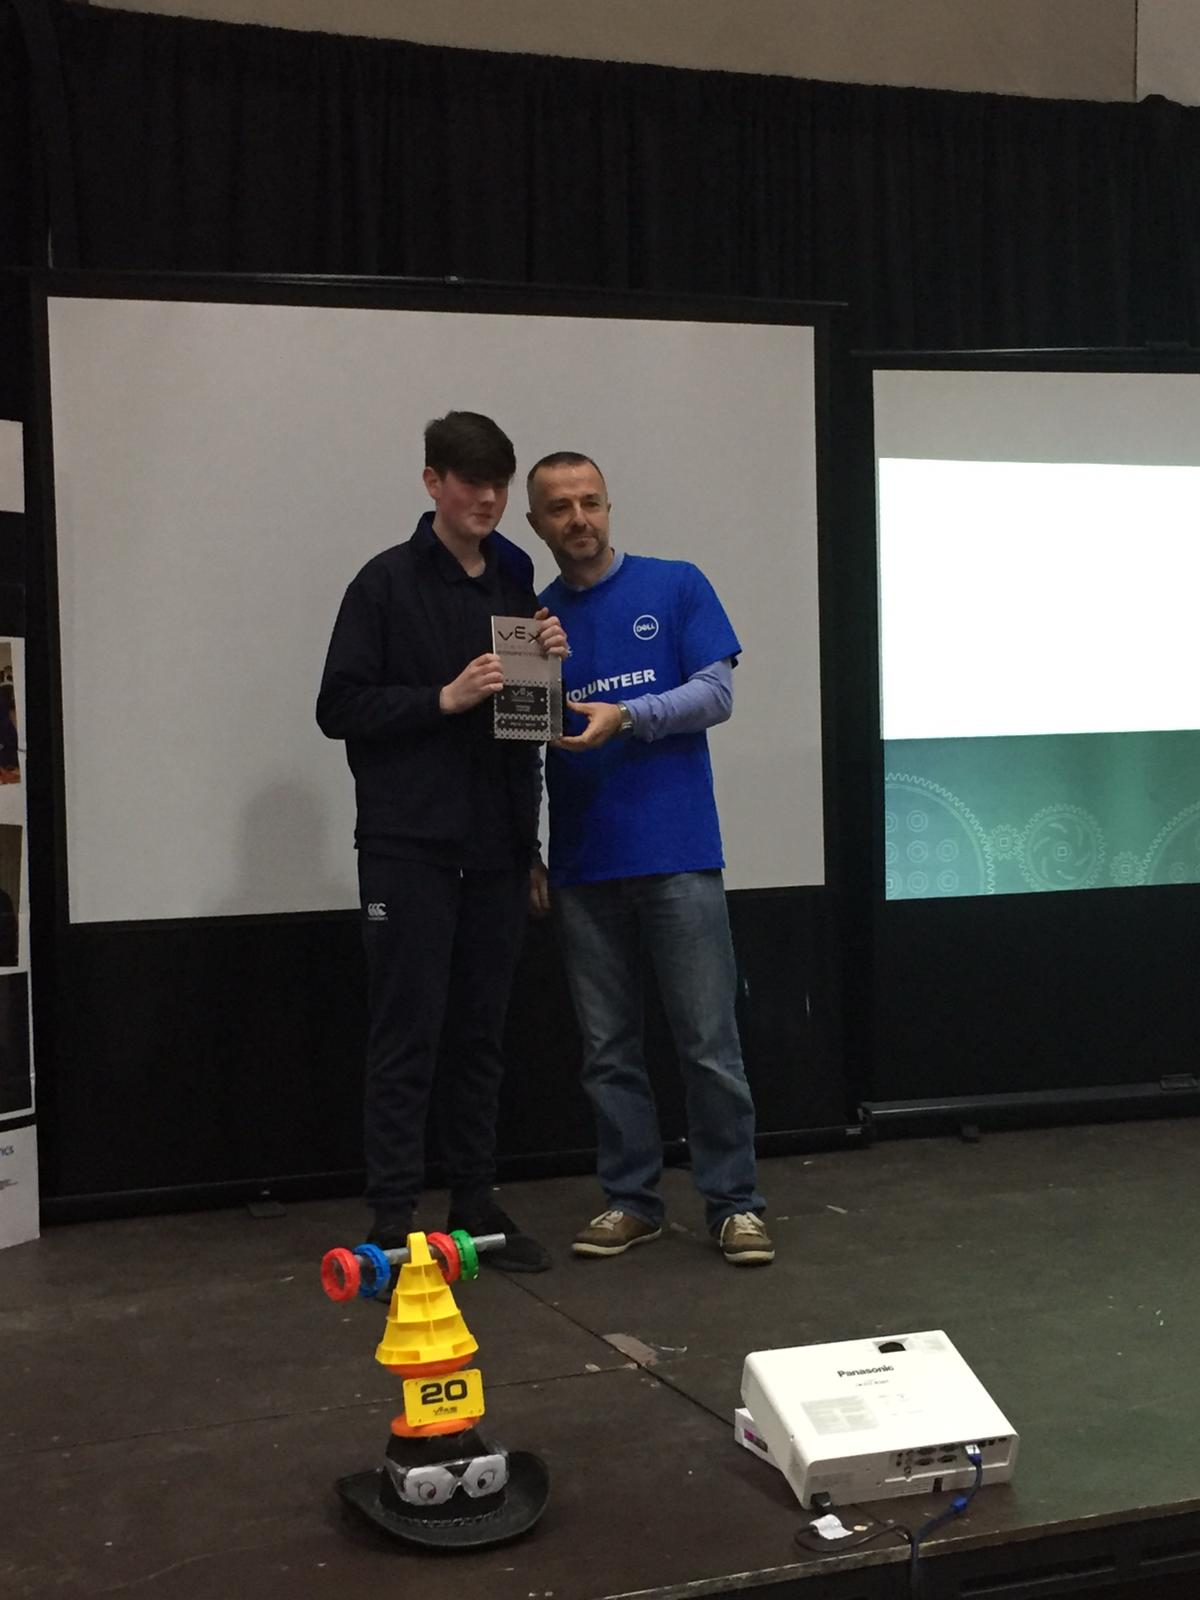 Conor Gaffney & VEX Robotics Representative.jpg